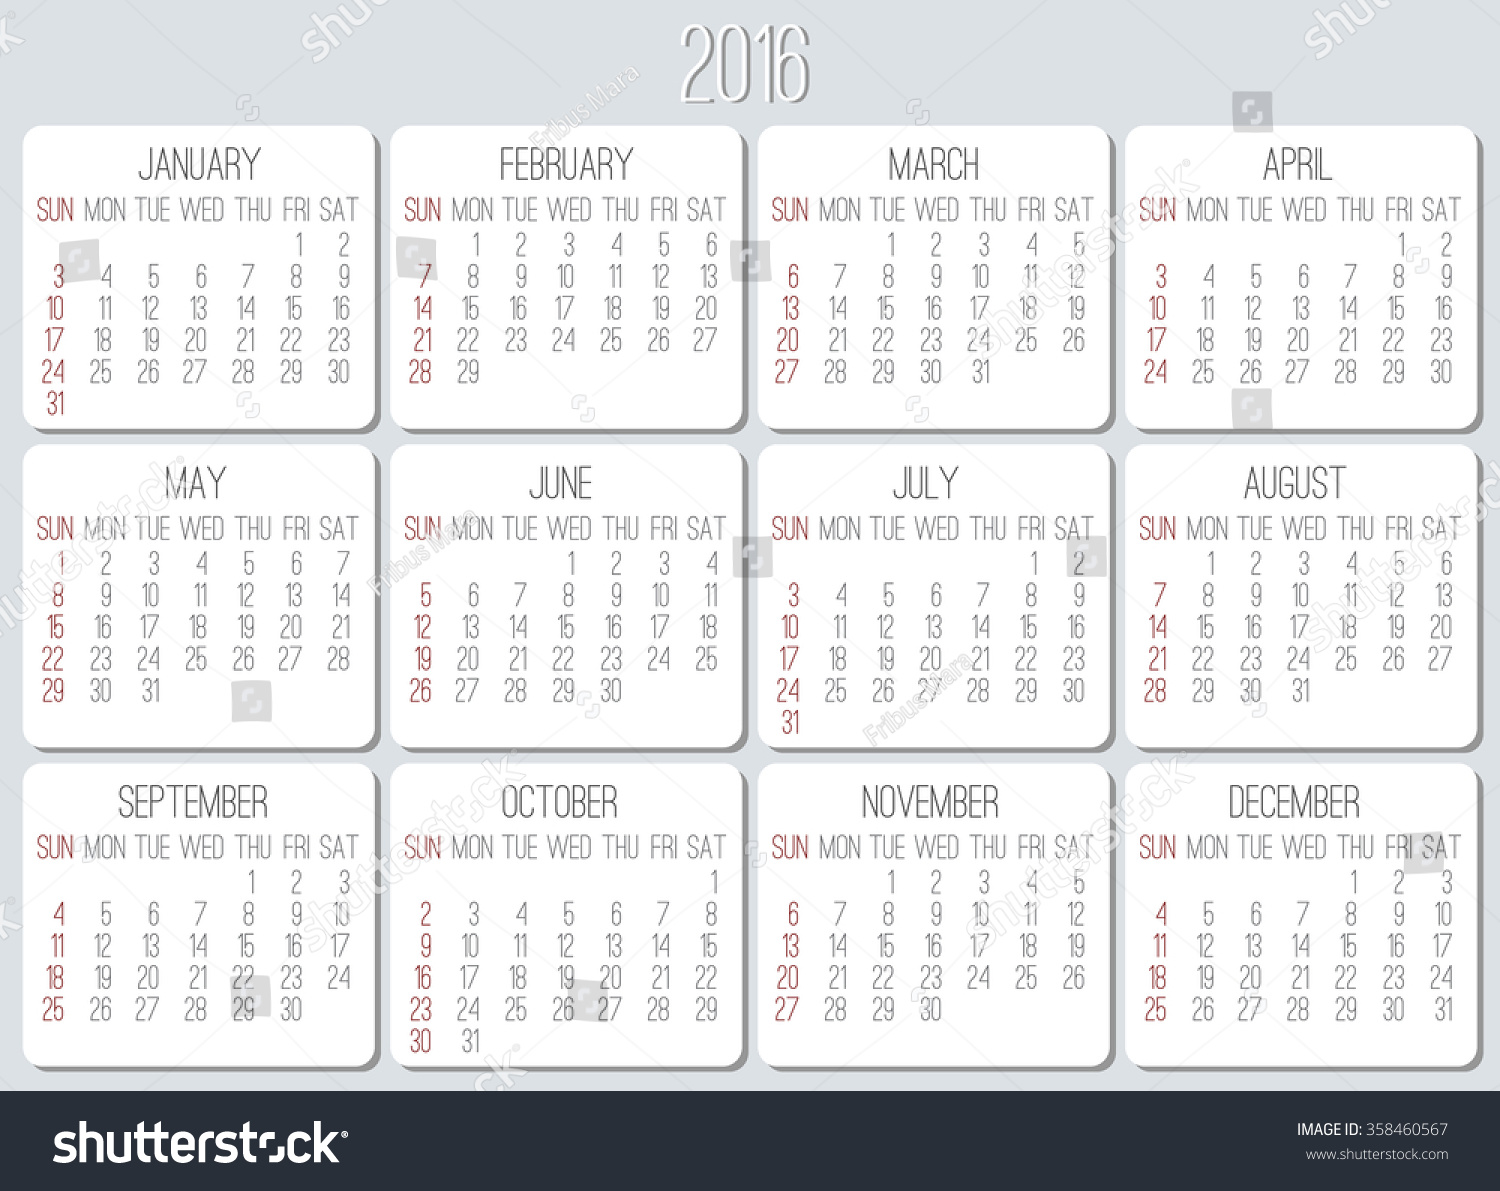 Year Calendar Starting : Year plain vector monthly calendar stock